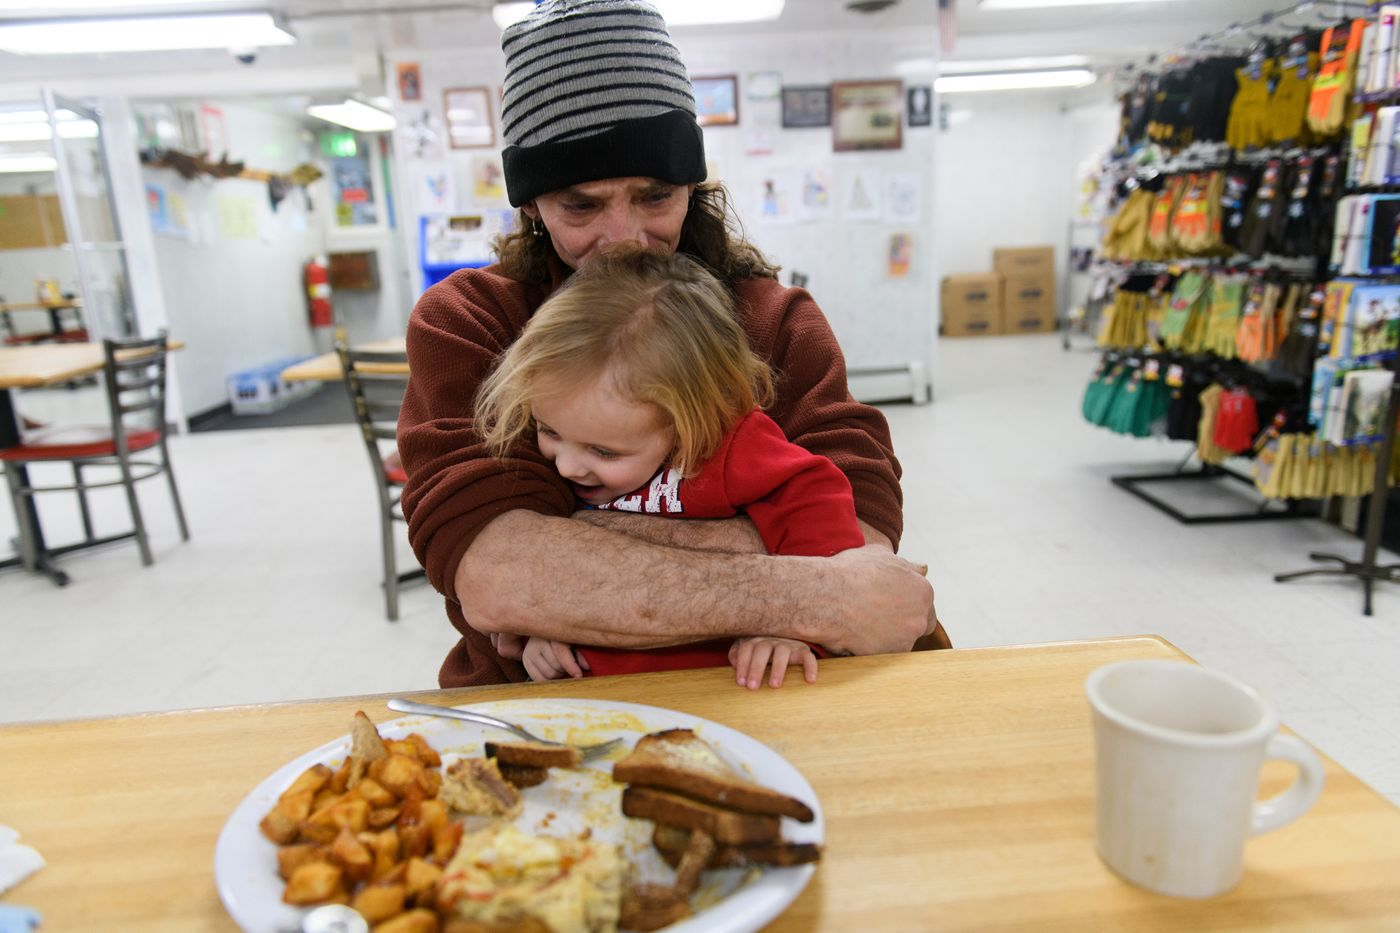 Lance Mackey holds his 2-year-old son Atigun during a stop for food at the Hilltop Truck Stop outside of Fairbanks. (Marc Lester / ADN)